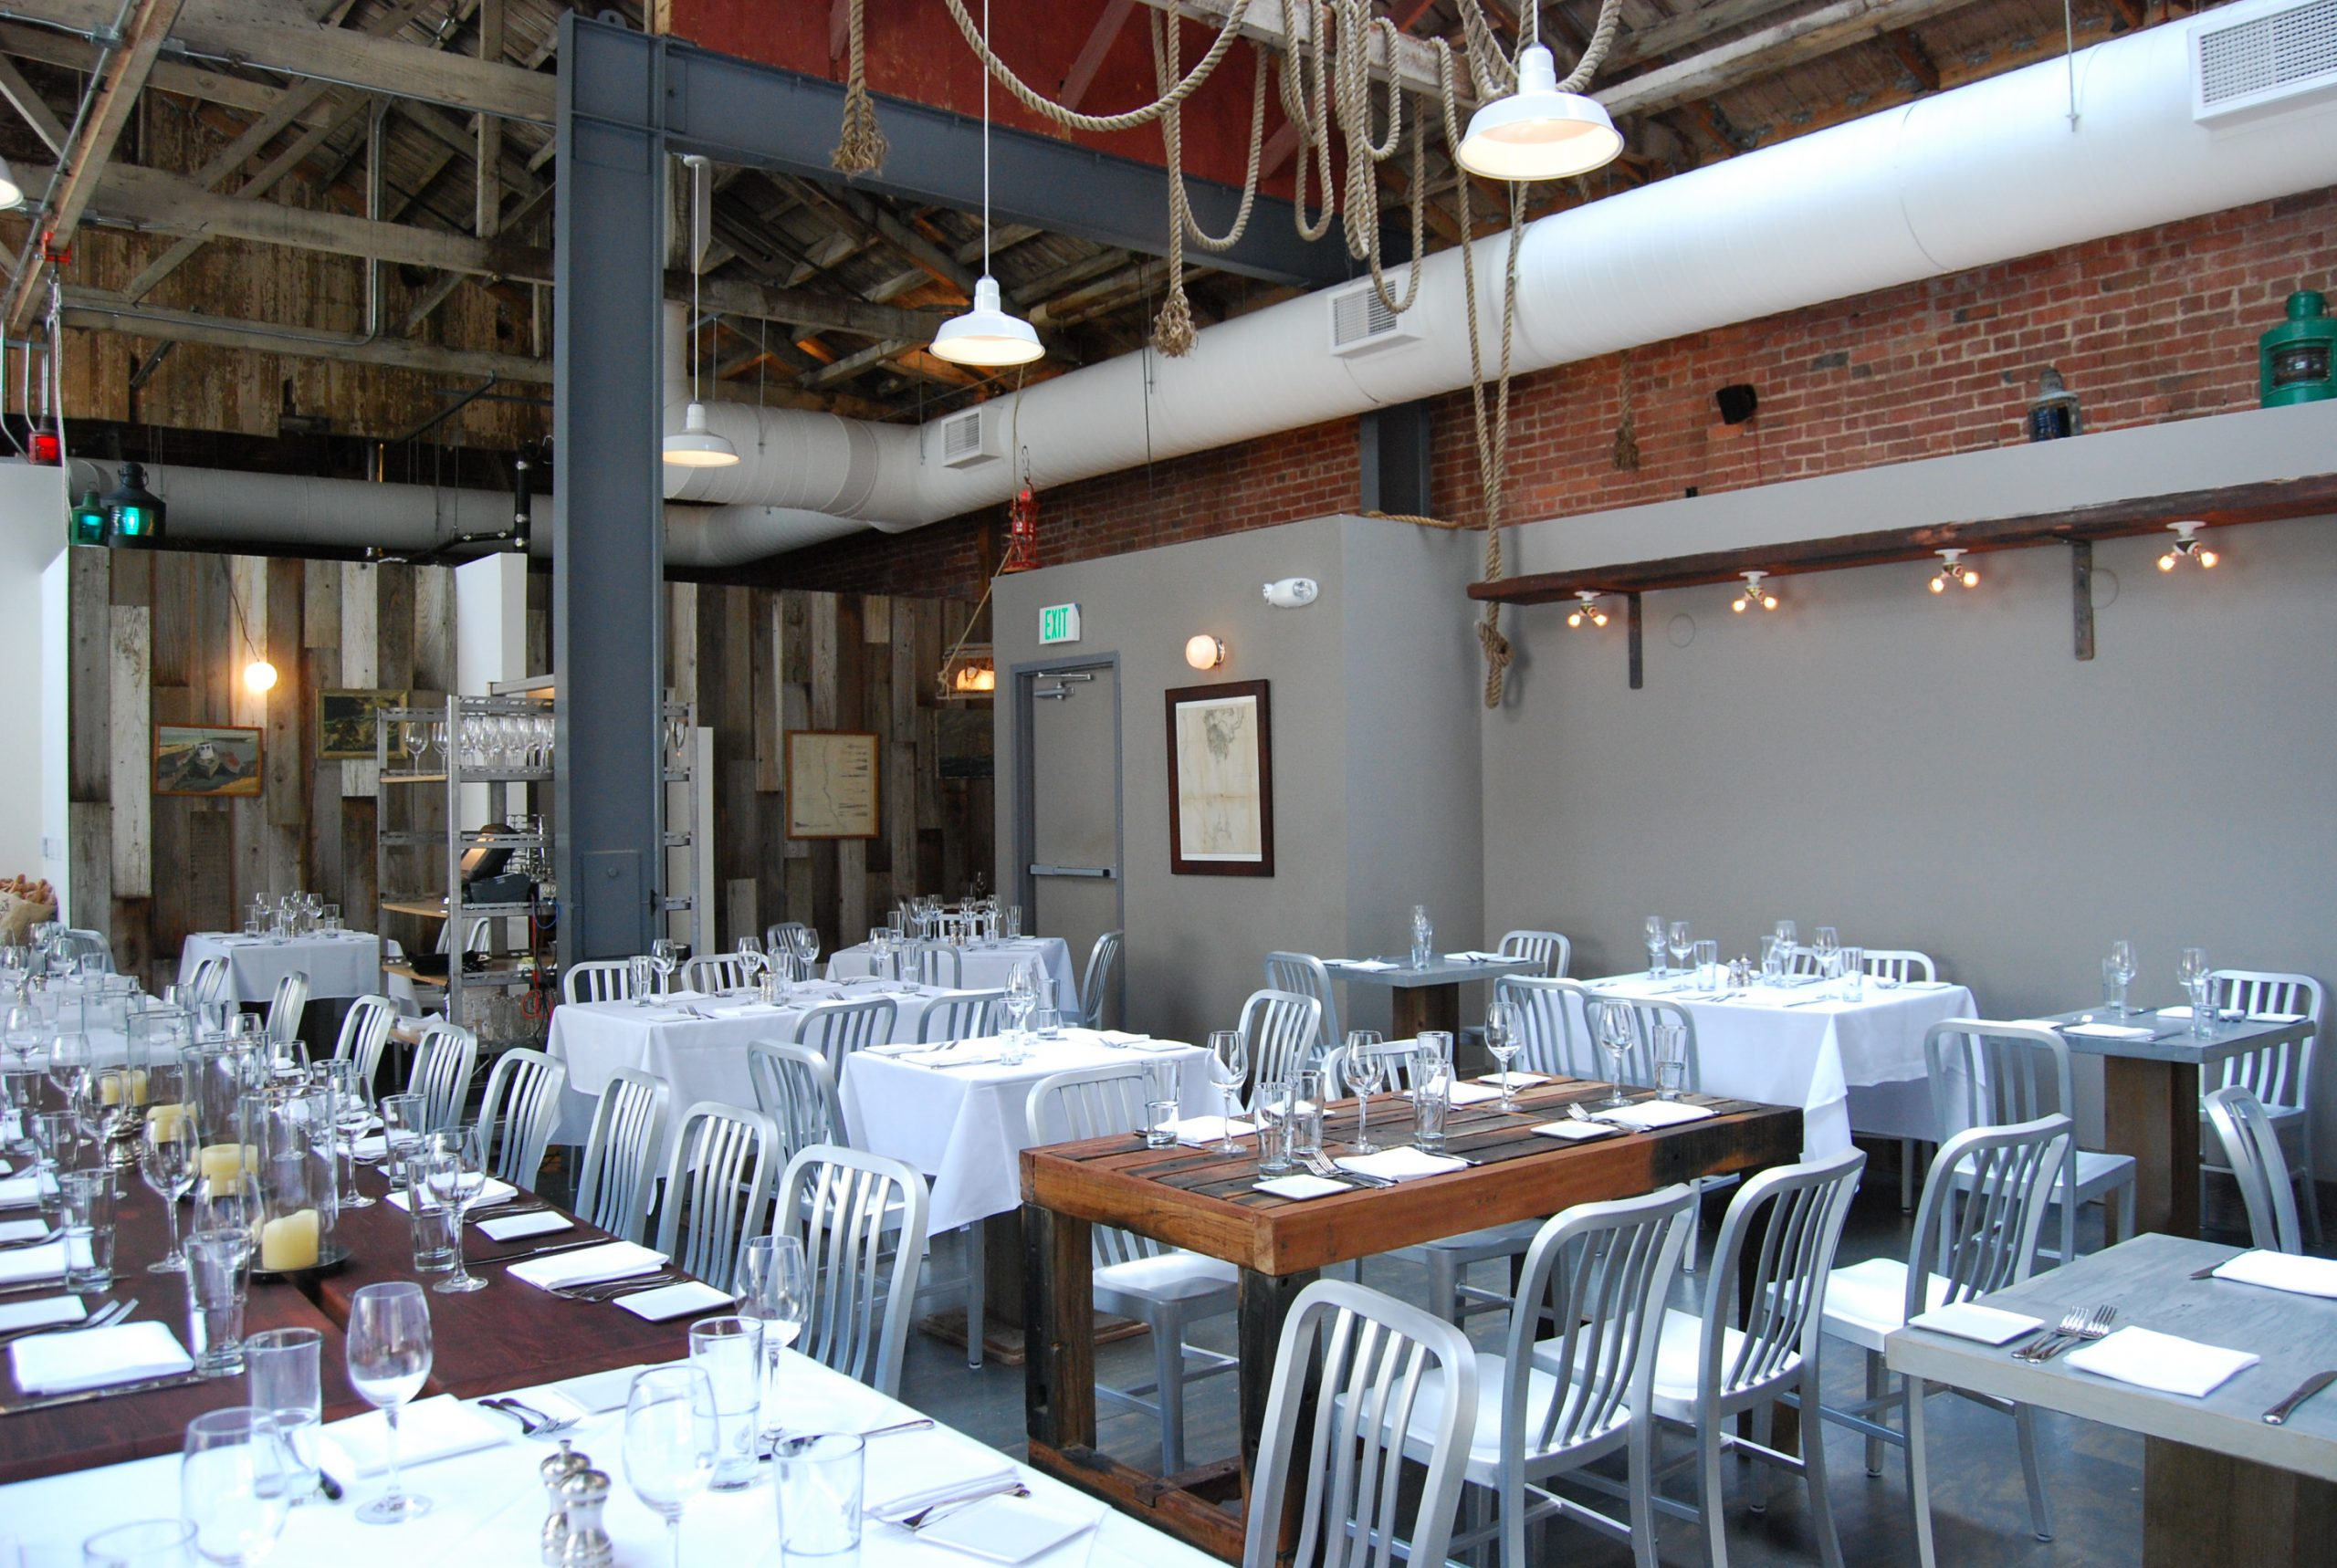 Employment Law Considerations as San Francisco Reopens for Indoor Dining